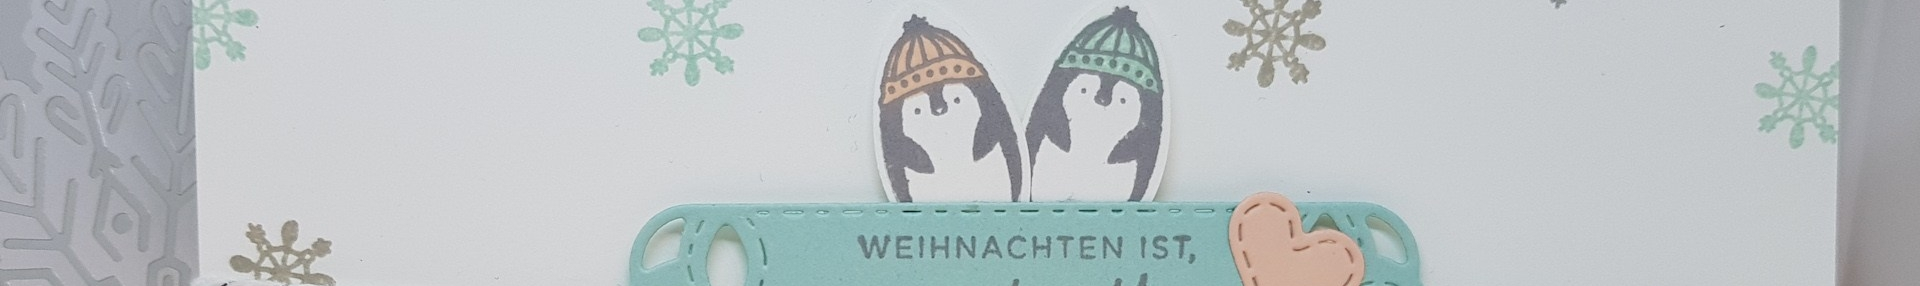 Stempelhurra.com Weihnachten, Christmas, Pinguin, Making Every Day Bright, Stampin Up, SU